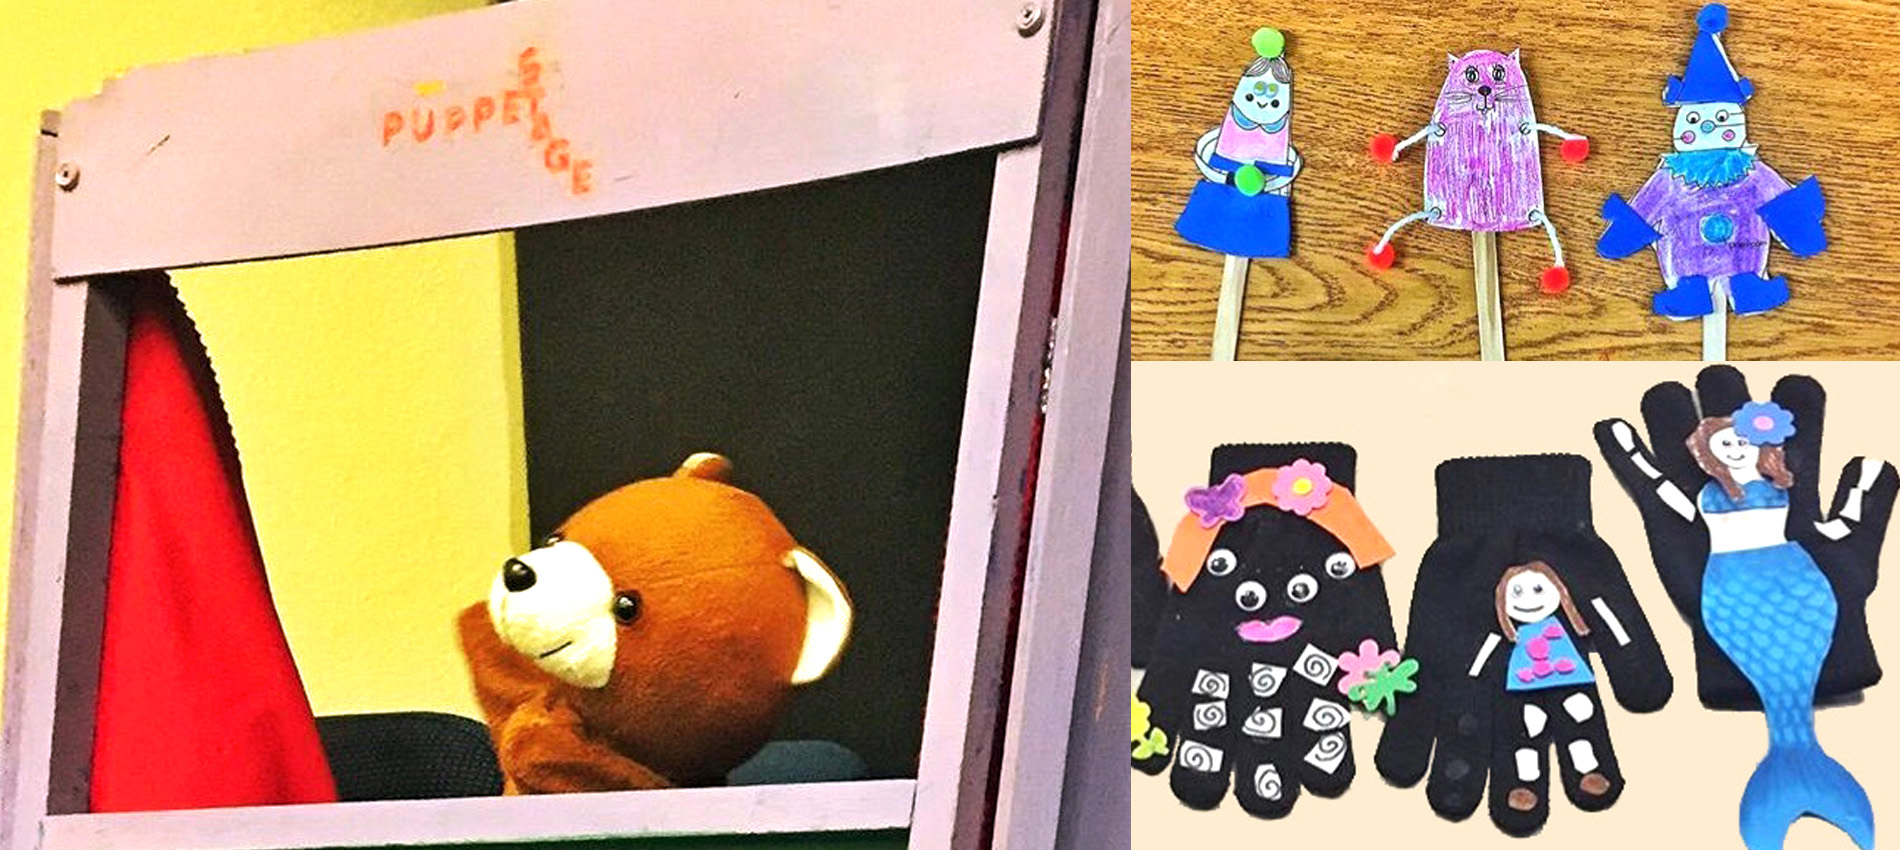 Puppetry (Grades 3-7)